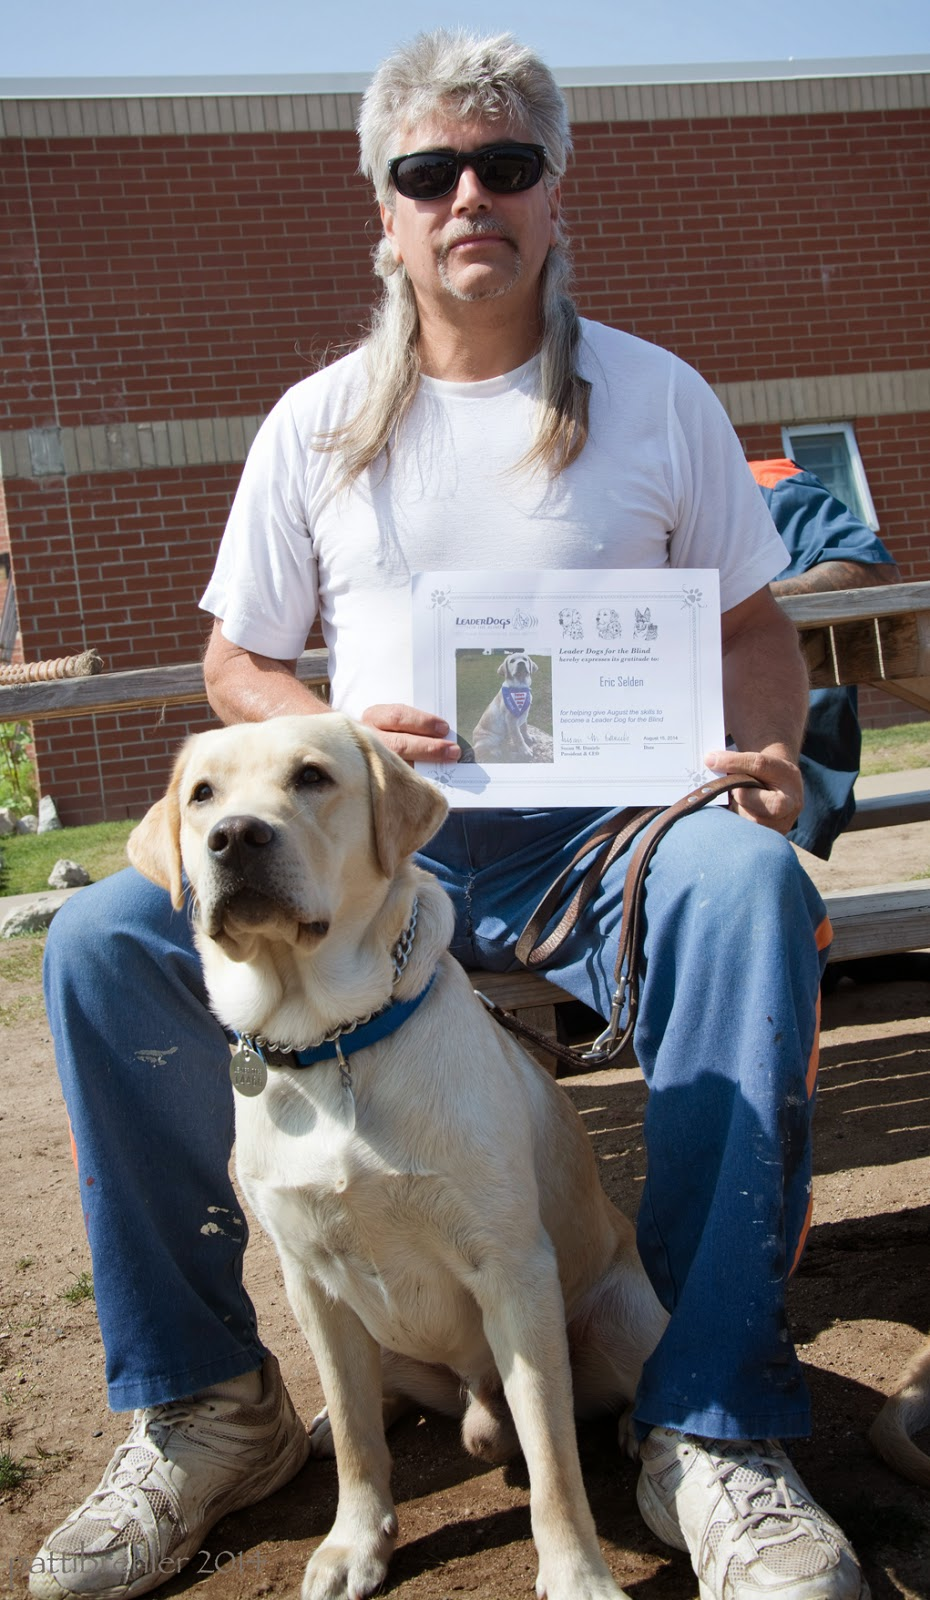 A man wearing sunglasses, blue prison pants and a white t-shirt is sitting in the sun on a picnic bench, facing the camera. Between his legs is a young yellow lab. The man is holding the dog's leash with his left hand on his knee, and a certificale in front of his body with his right hand. There is a brick building behind him. The man has a somber look on his face.